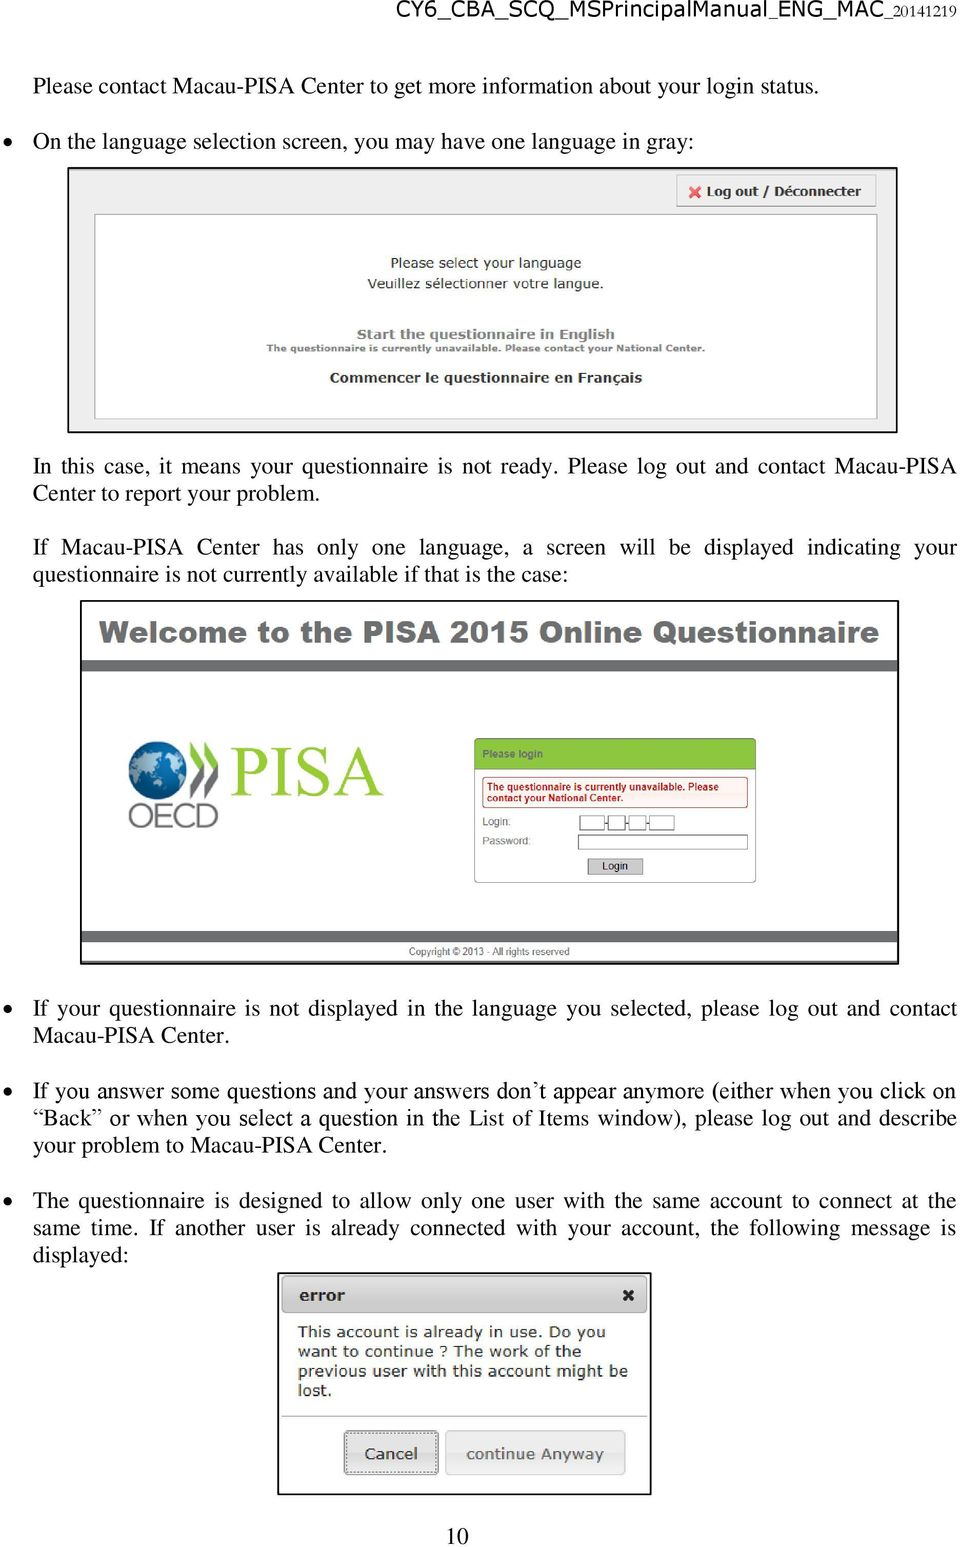 If Macau-PISA Center has only one language, a screen will be displayed indicating your questionnaire is not currently available if that is the case: If your questionnaire is not displayed in the